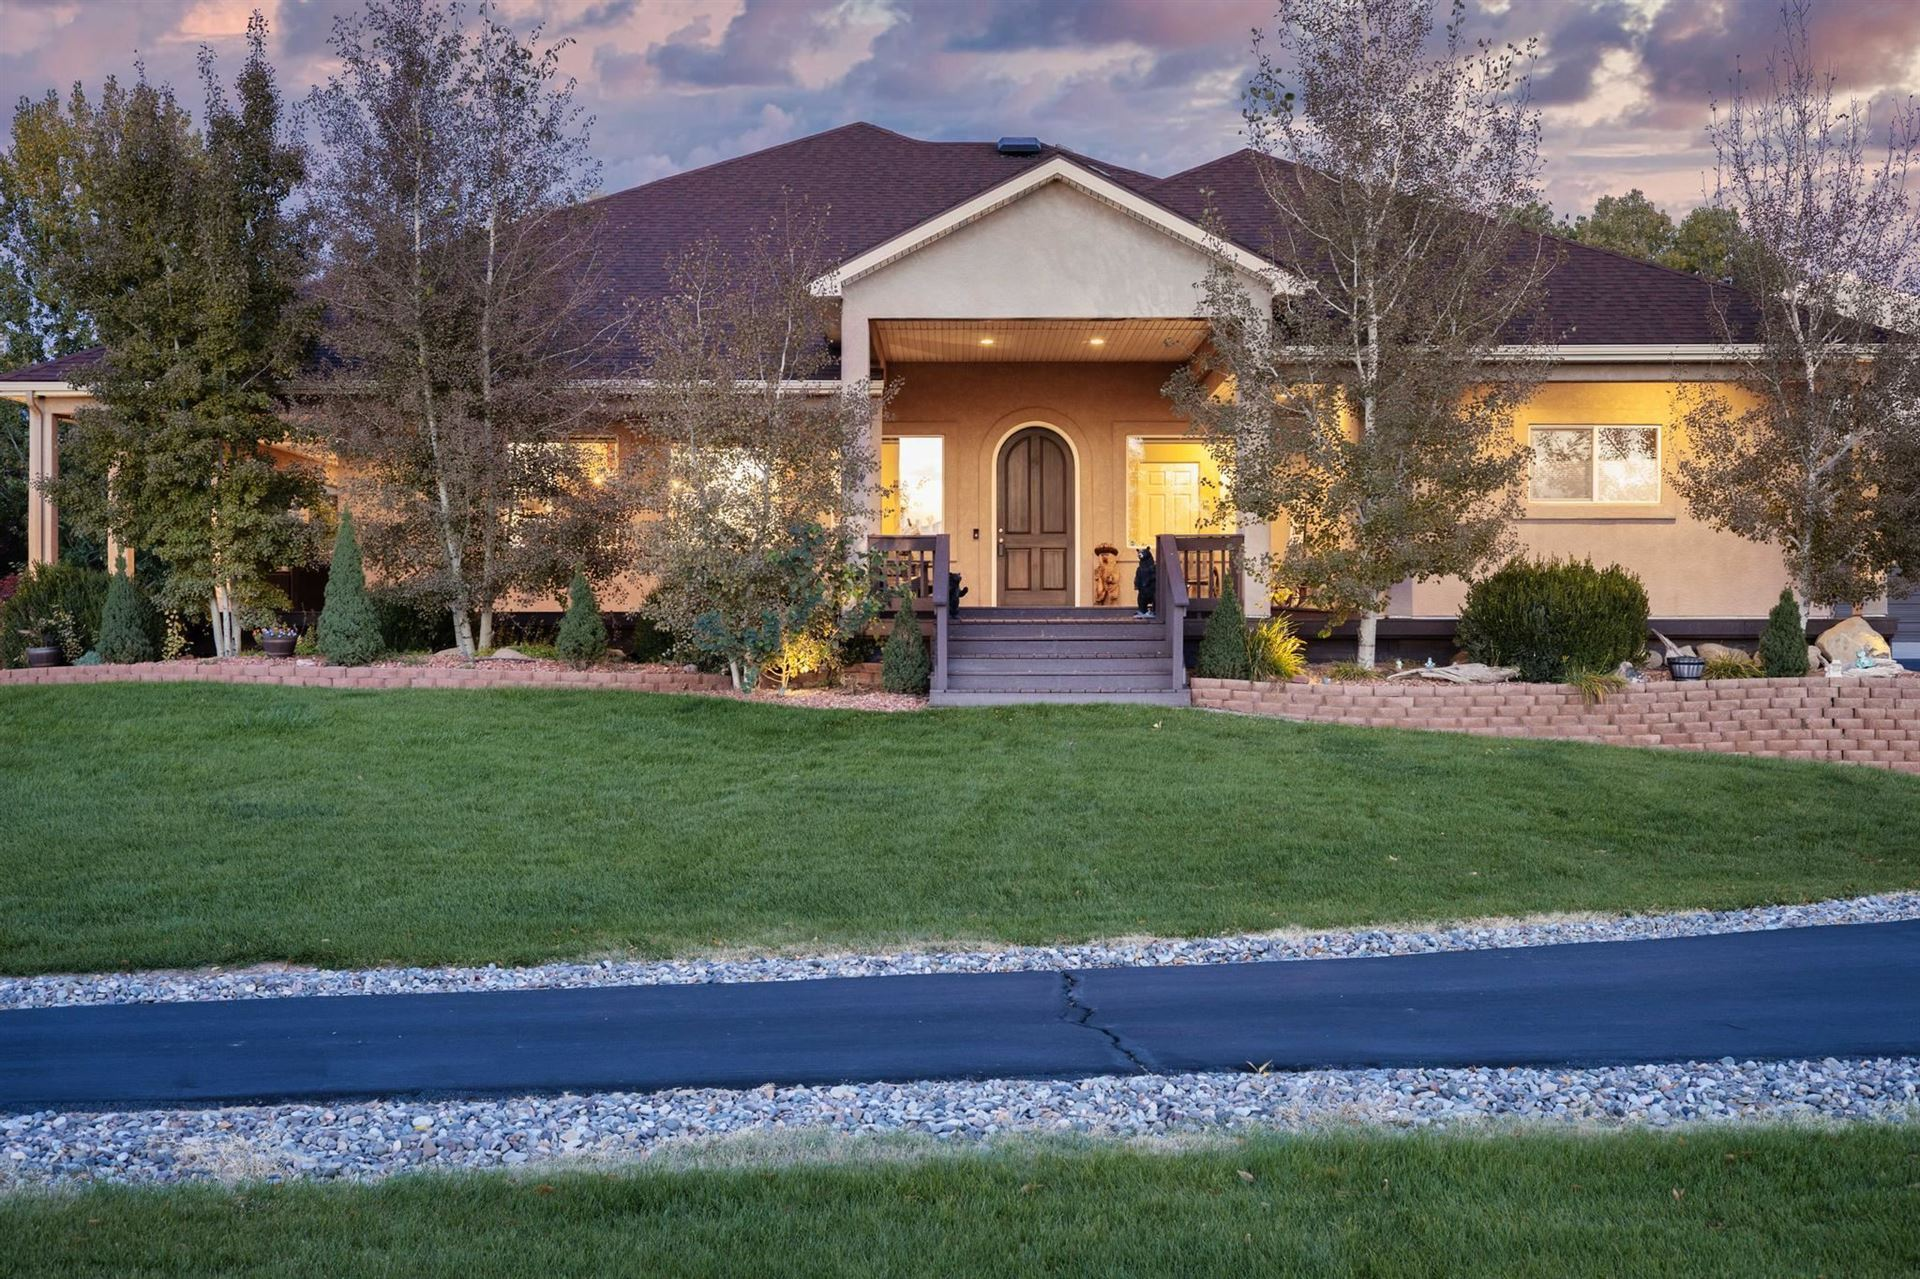 Photo of 894 25 Road, Grand Junction, CO 81505 (MLS # 20215701)